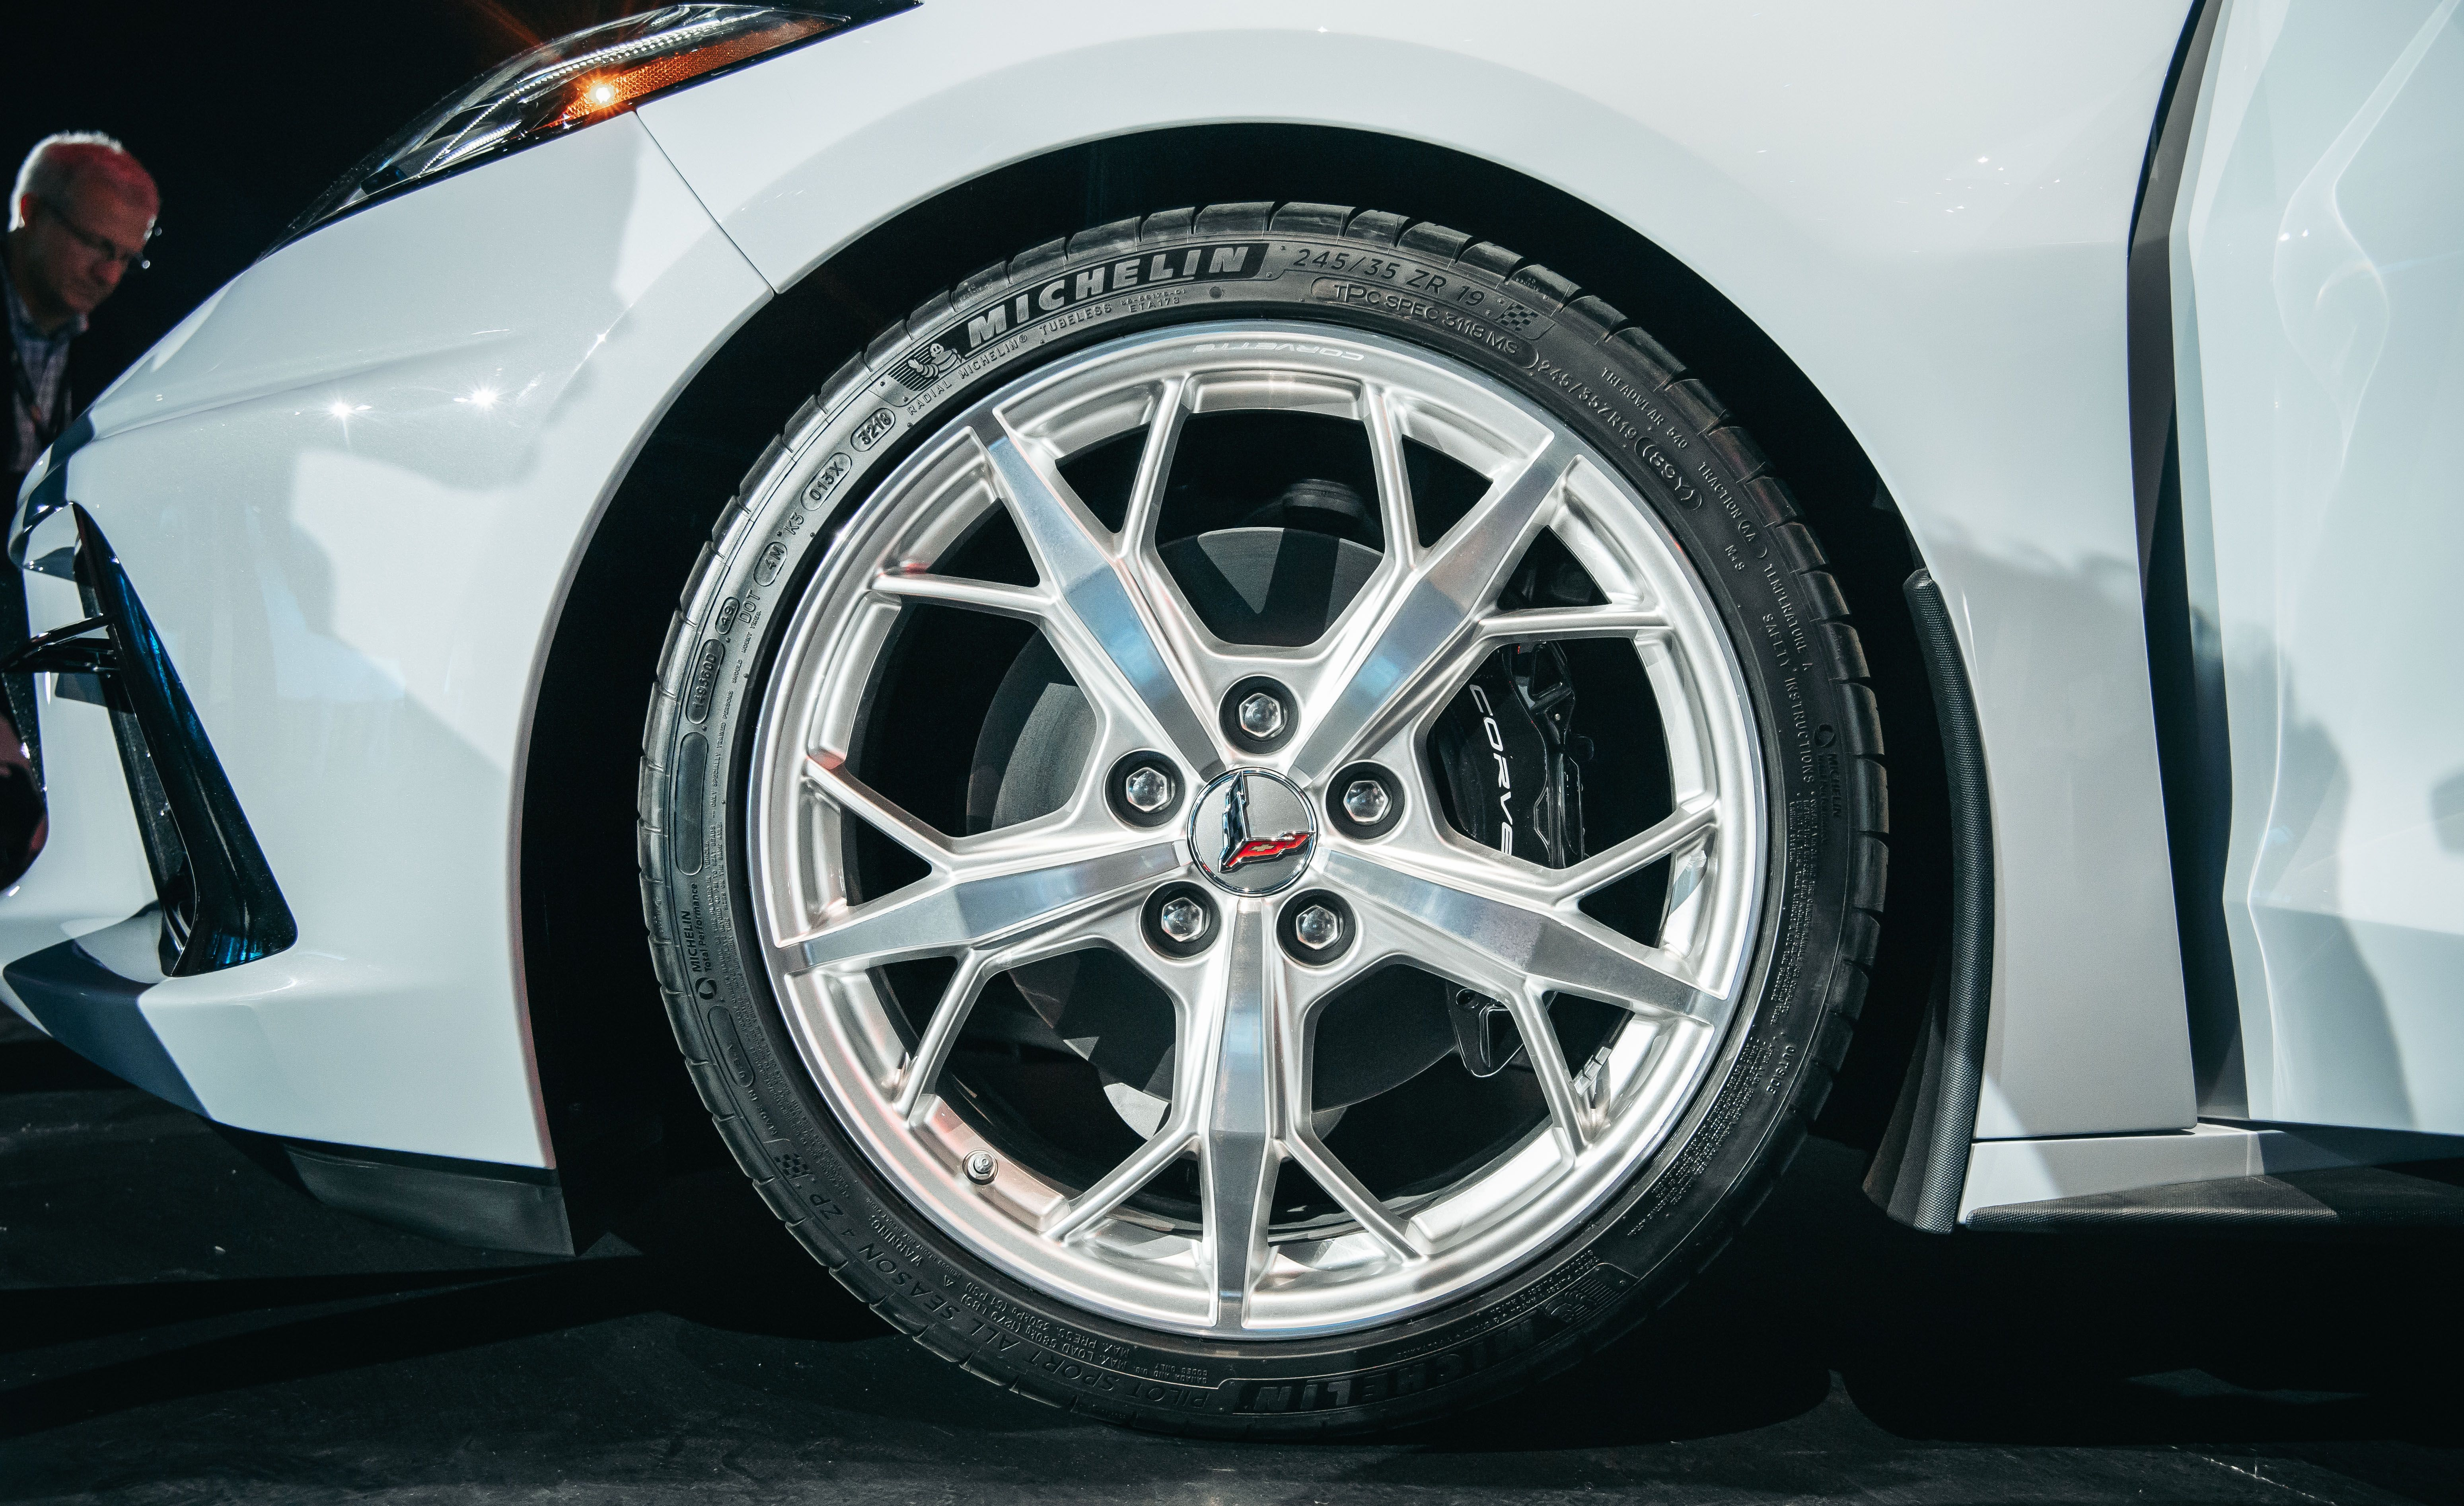 best all season car tires 2020 The Base 2020 Corvette Comes with All Season Tires. Here's Why